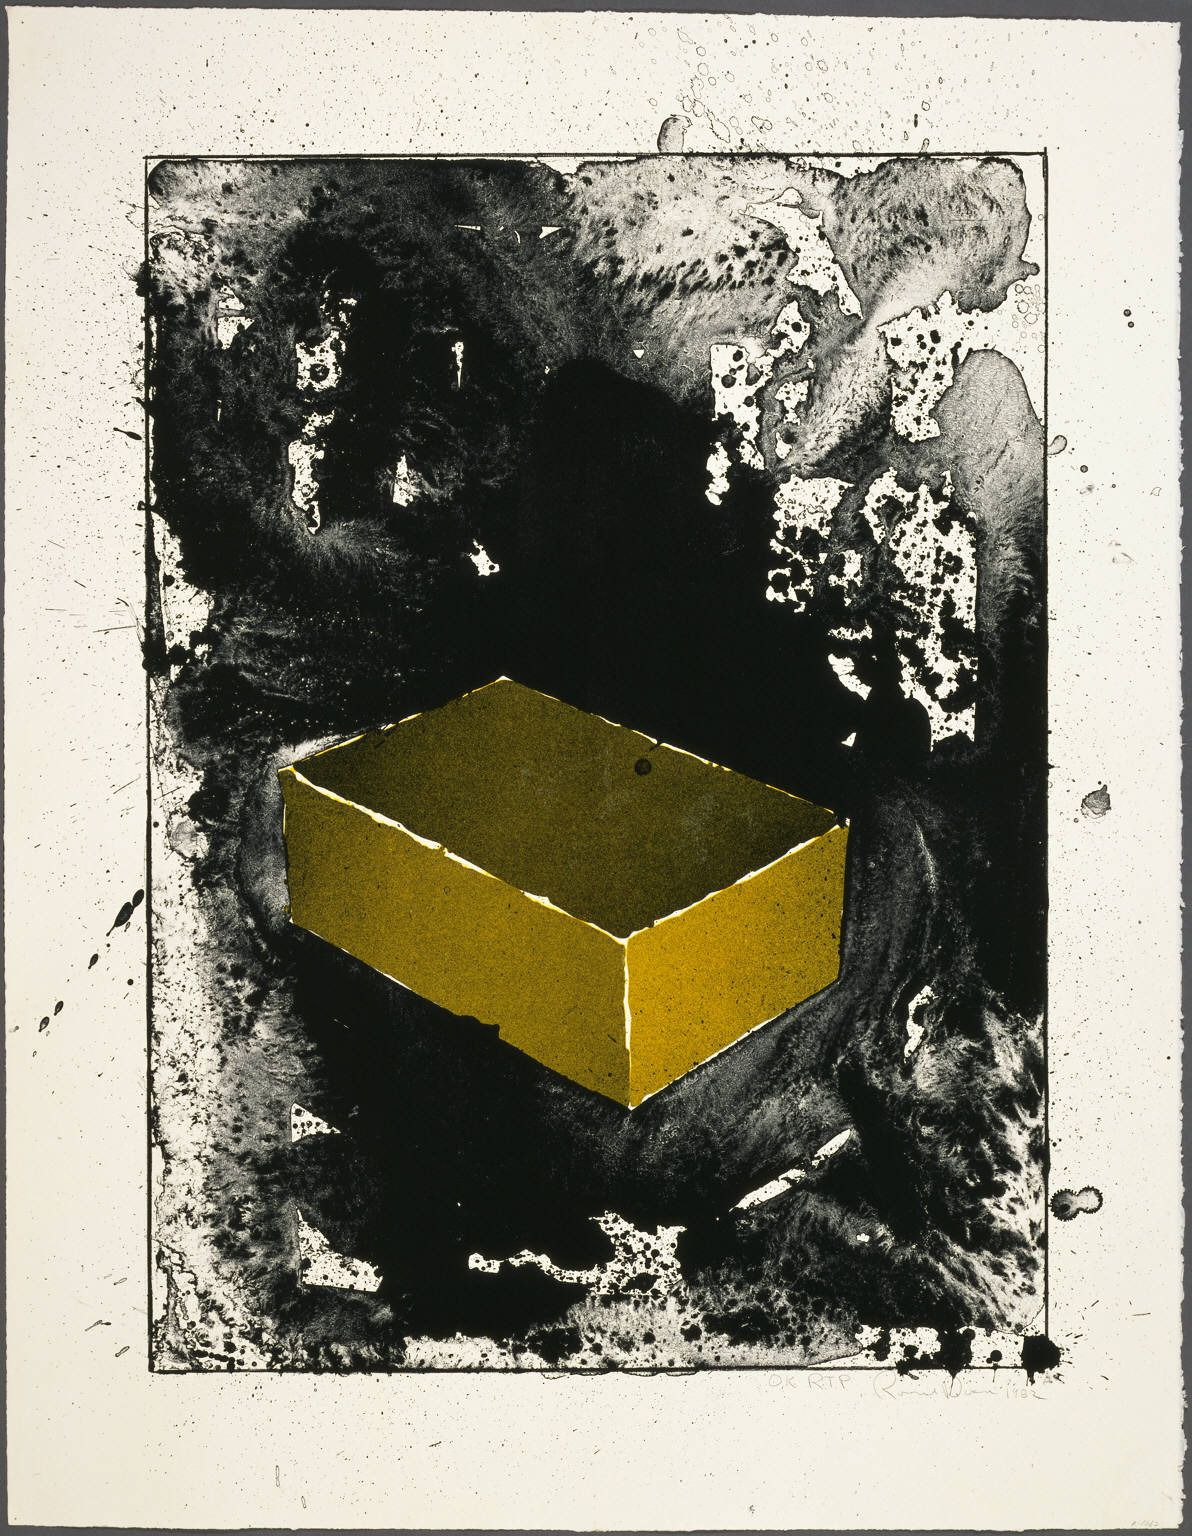 Yellow Brick | From a unique collection of prints and multiples at https://www.1stdibs.com/art/prints-works-on-paper/